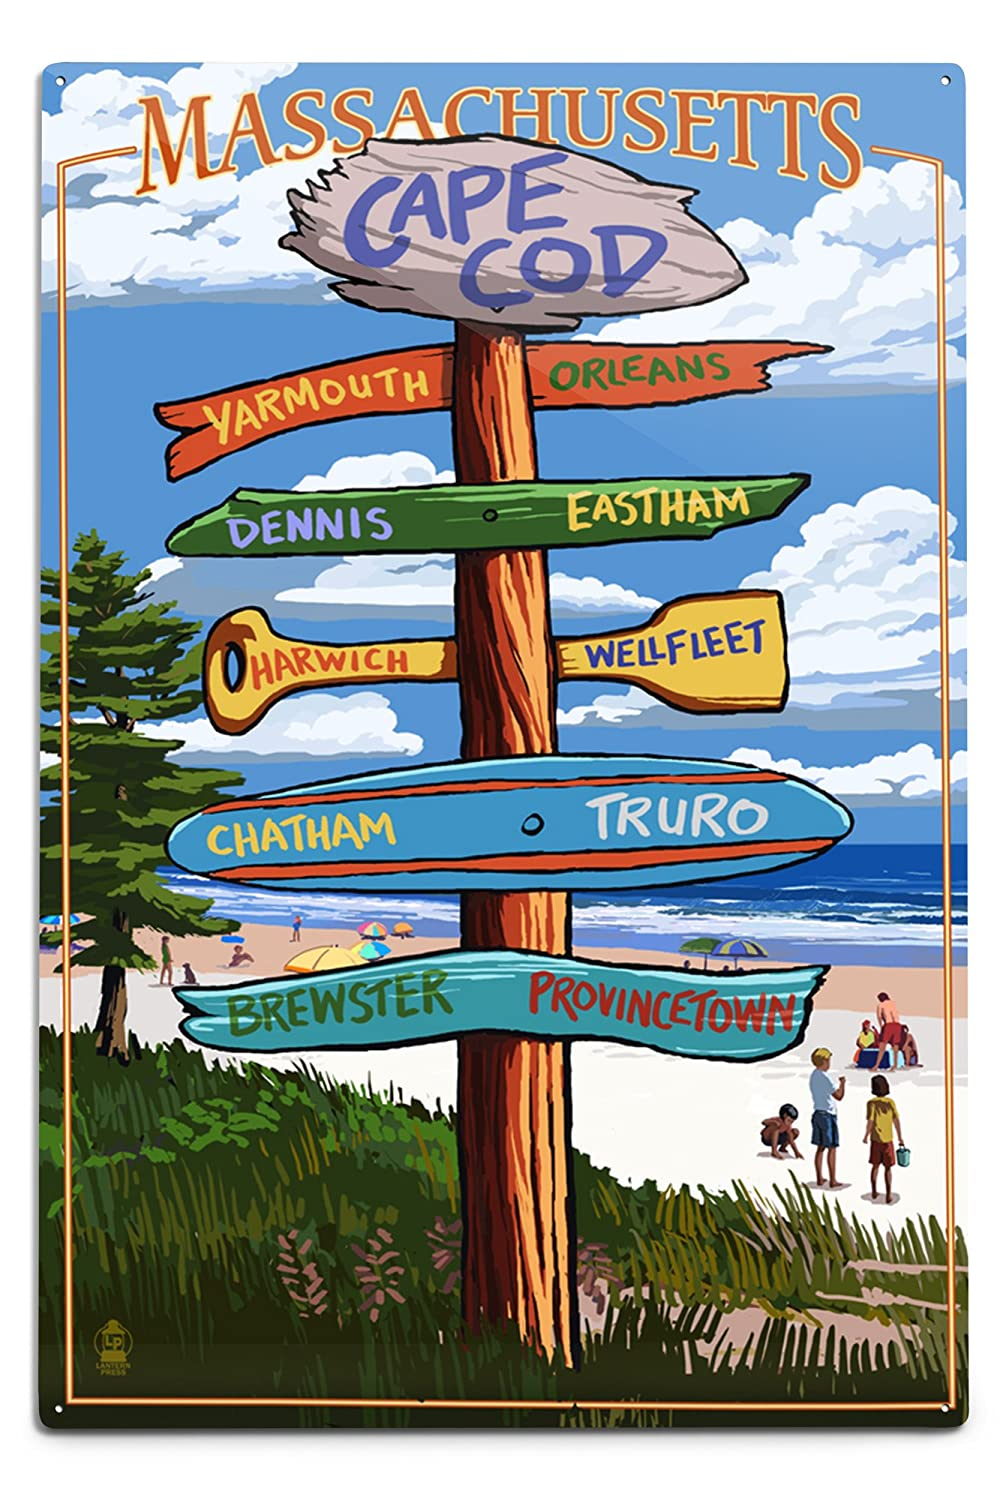 16x24 SIGNED Print Master Art Print - Wall Decor Poster Massachusetts 41282 Destinations Sign Cape Cod Version 2